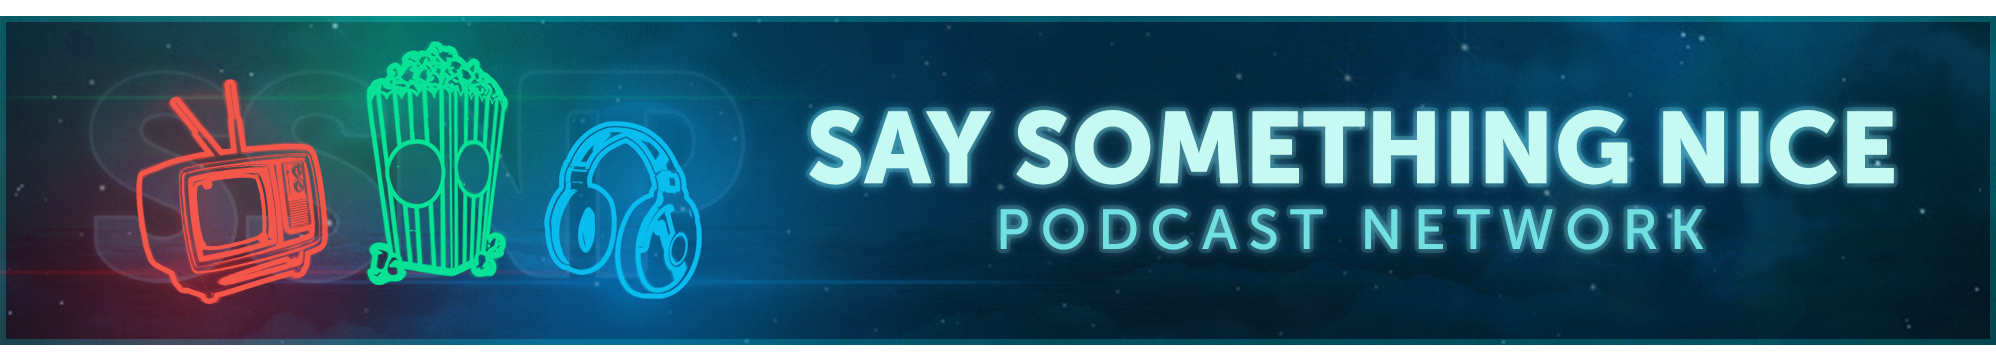 Say Something Nice Podcast – Film, TV & Music News, Reviews, and Discussion